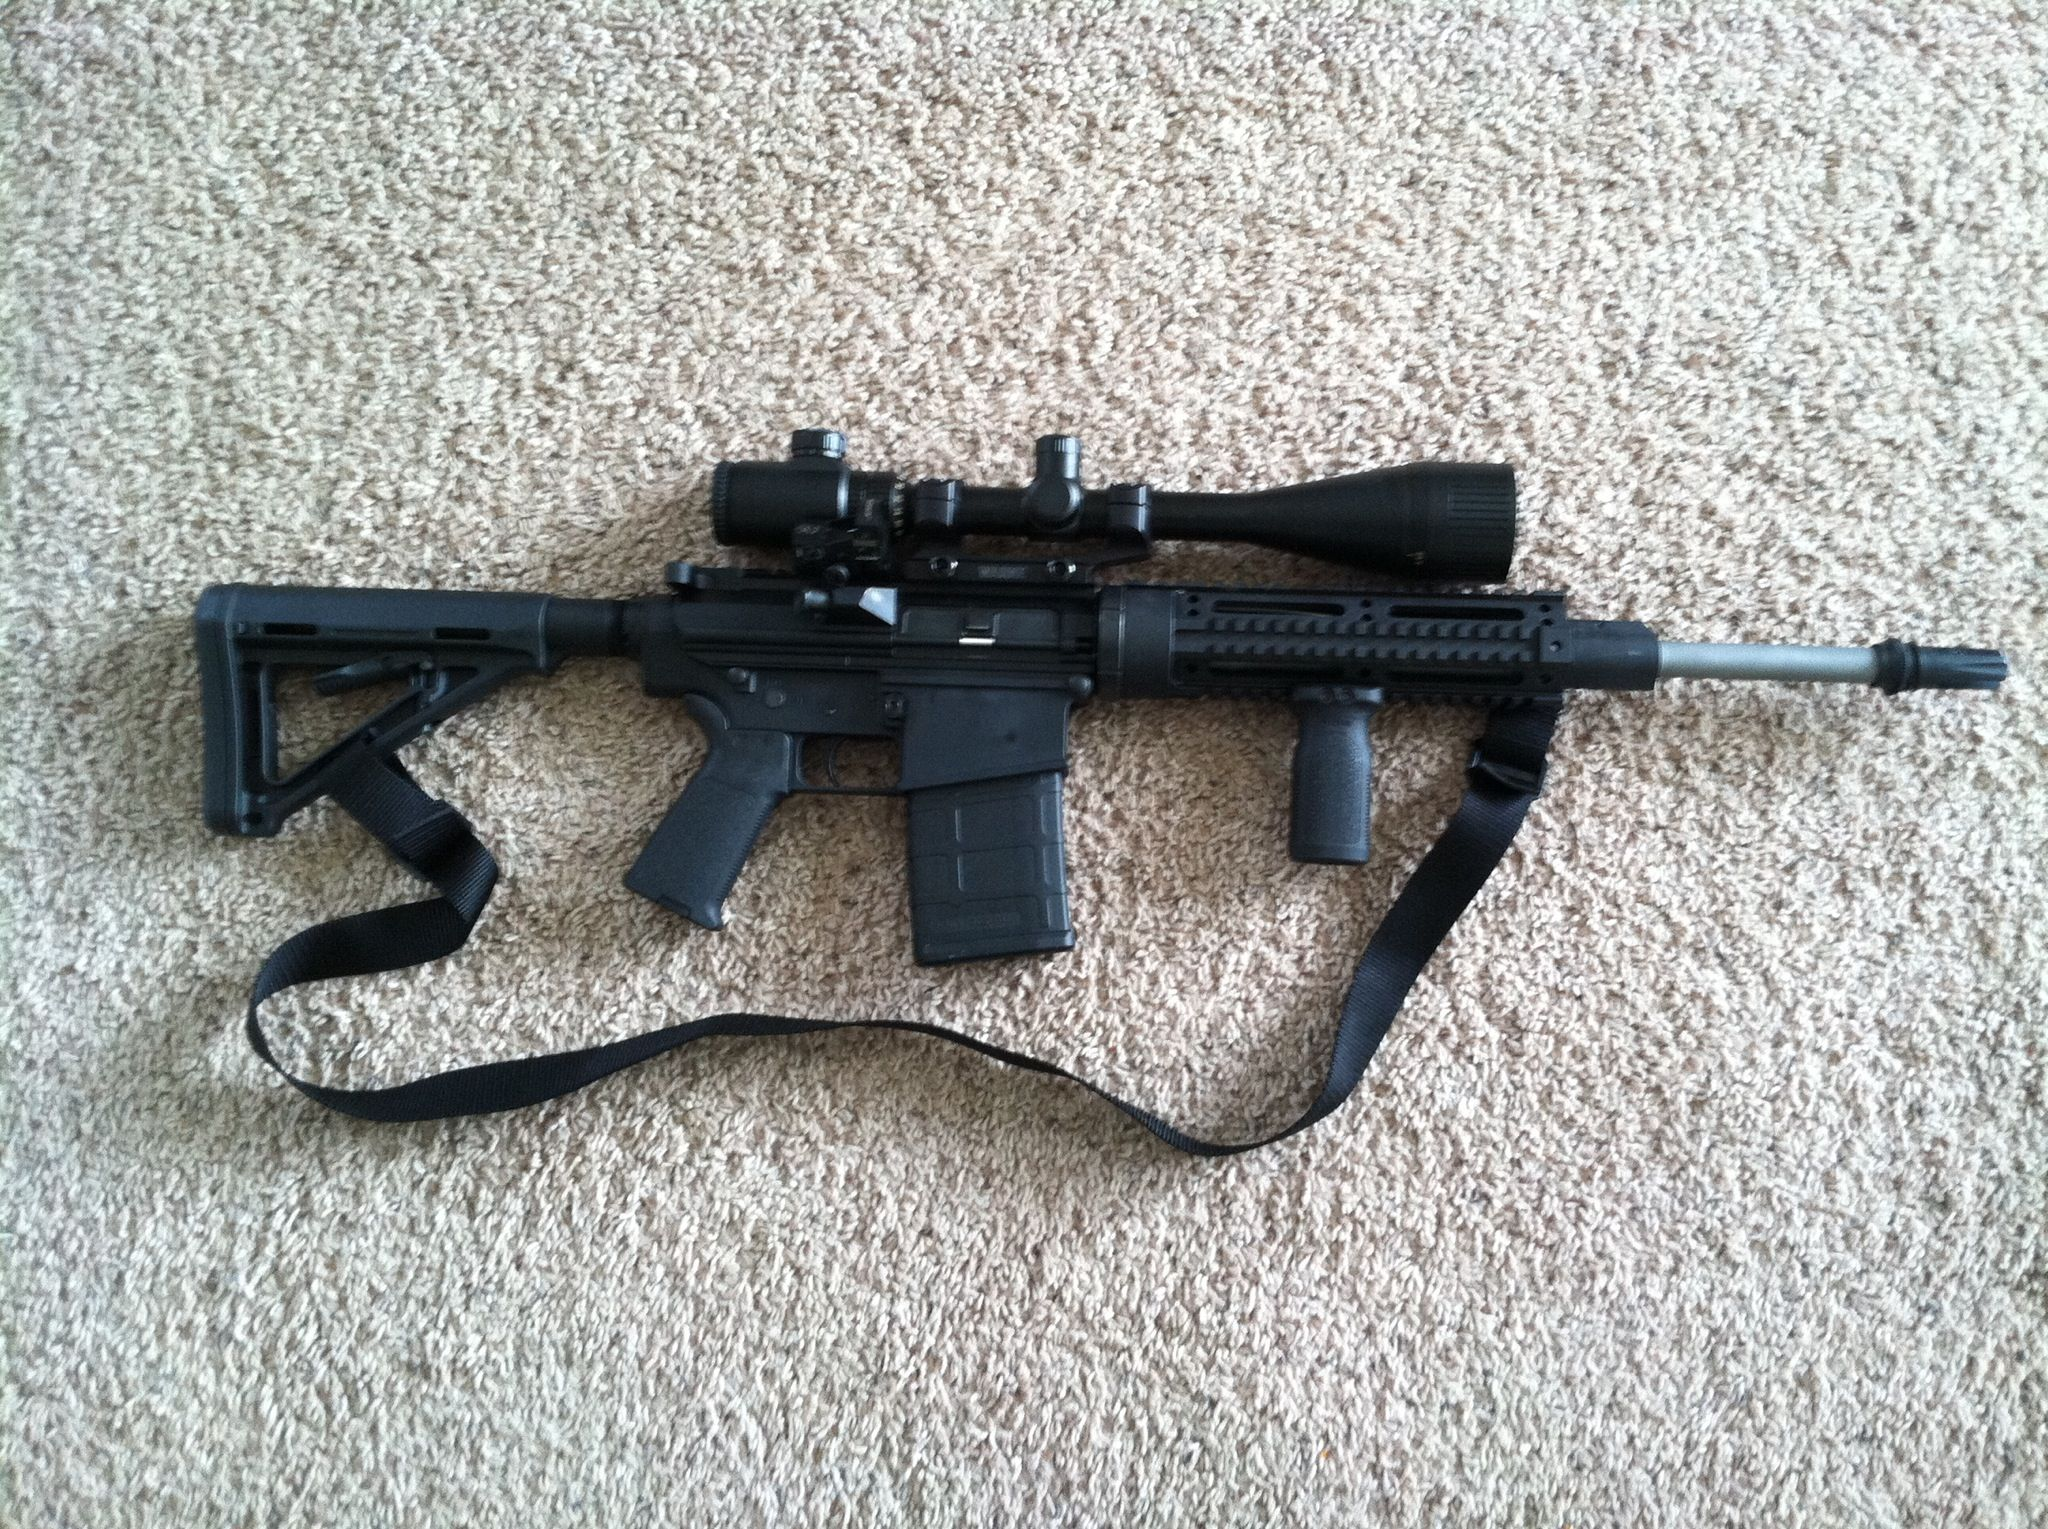 DPMS LR-308 Recon, Magpul stock, grip, VFG, and magazine, Warne